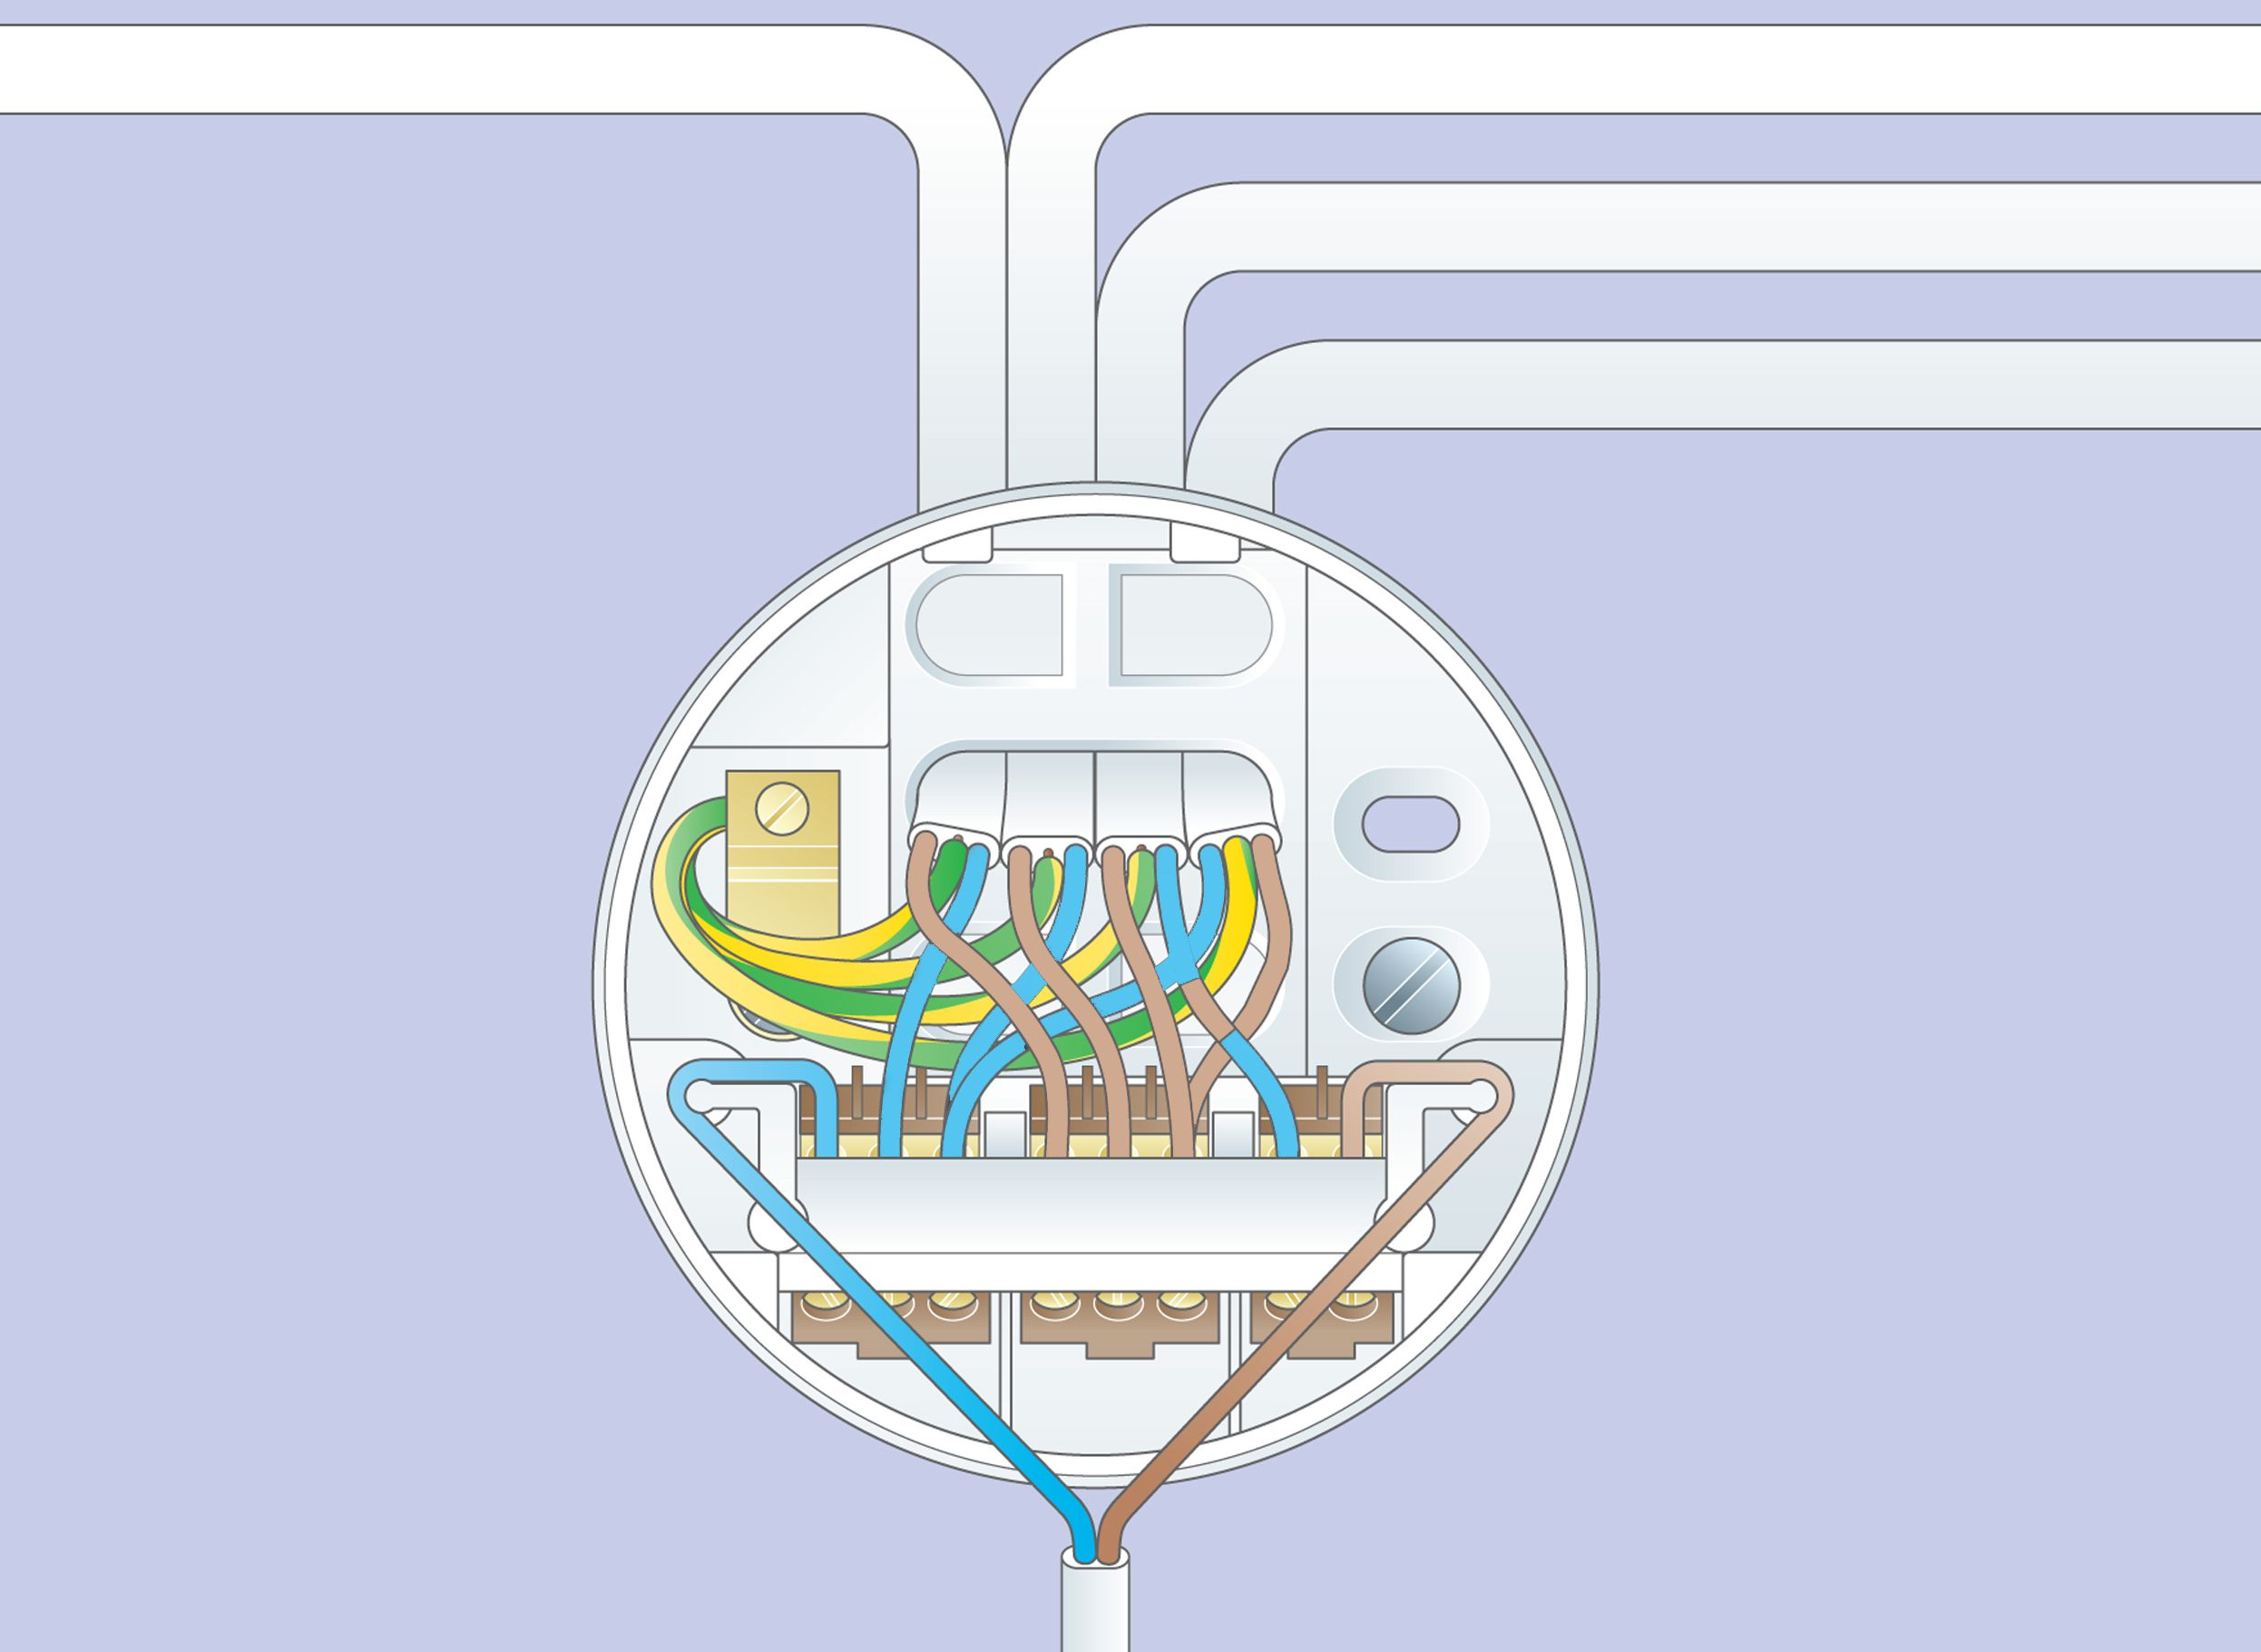 120v led light fixture wiring diagram with Cc Npcart 400211 on Pr15 Ultra Thin Led Recessed Light 8 Inch further Pentair Pool Light Wiring Diagram moreover Why Would A Light Switch Be Wired With The Neutral Wire in addition 40044985 Led Tube Light further 825281.